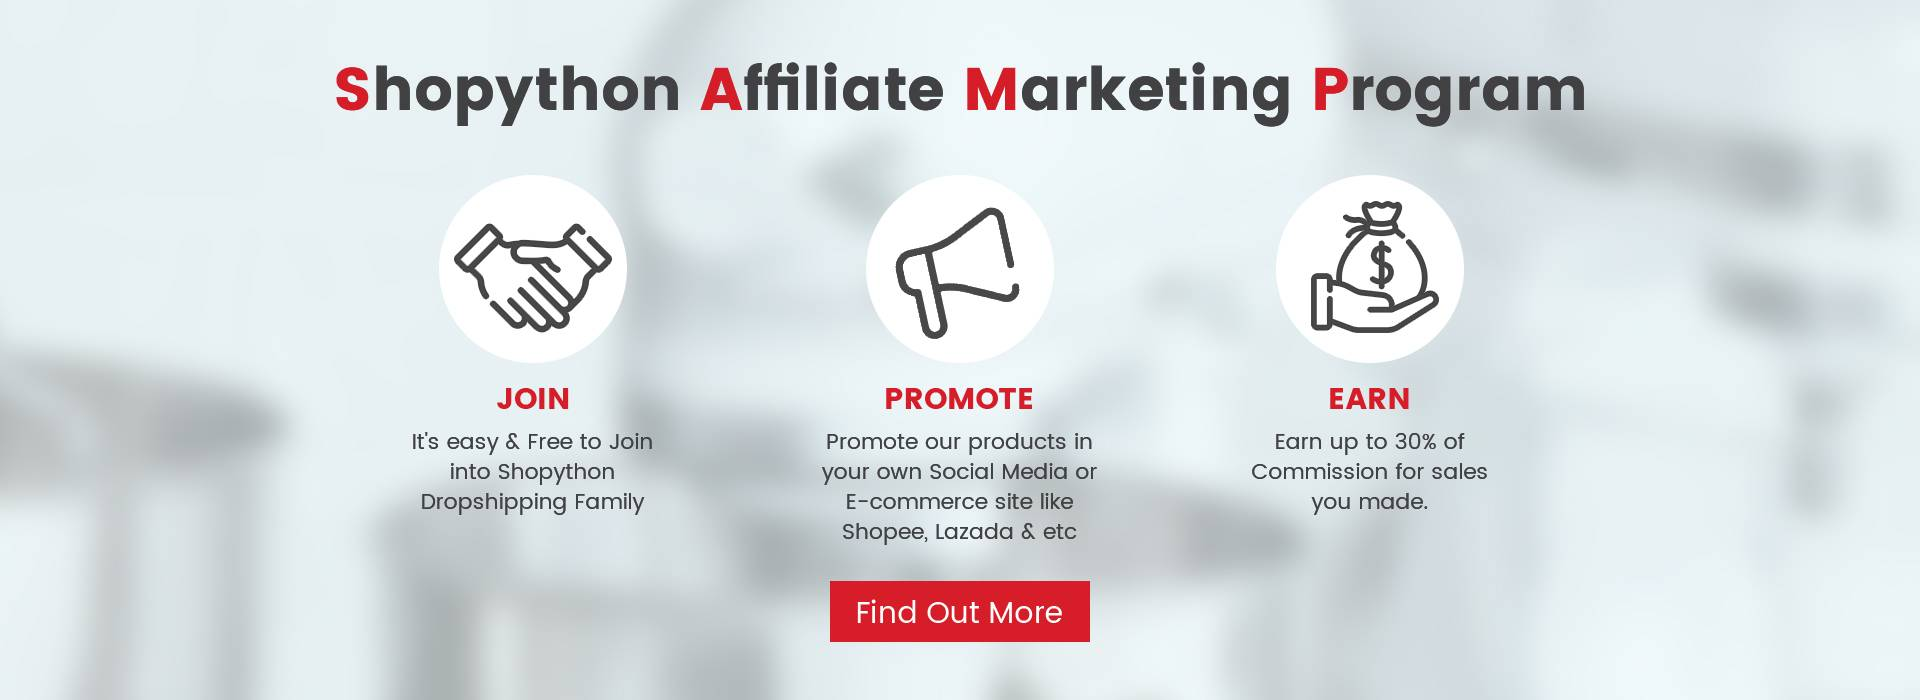 Shopython Affiliate Marketing Program